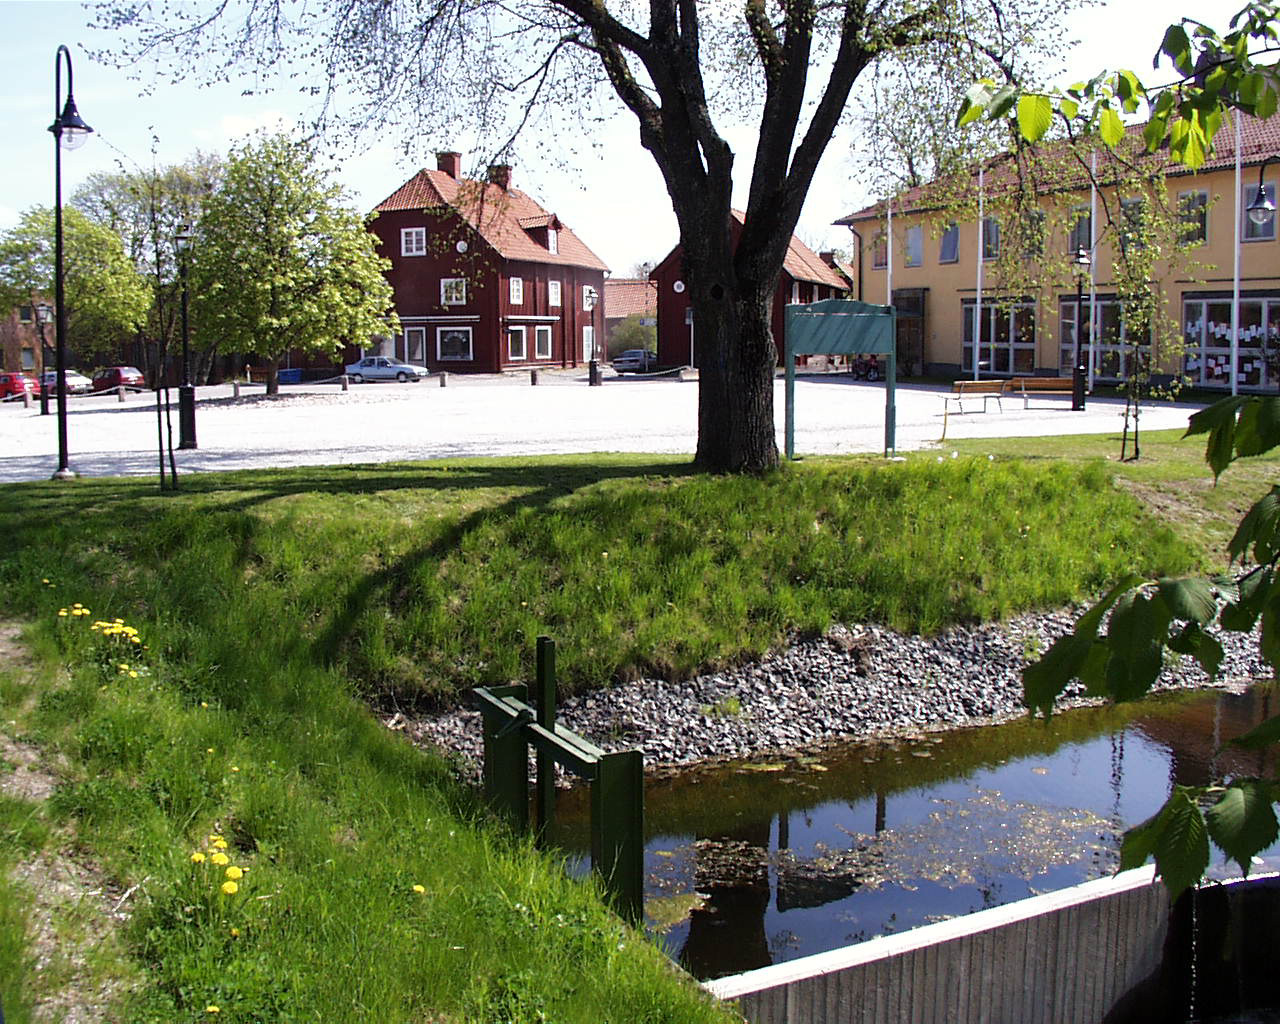 A square in Åtvidaberg. In the background cars are parked next to an old building. In the foreground is a pond.